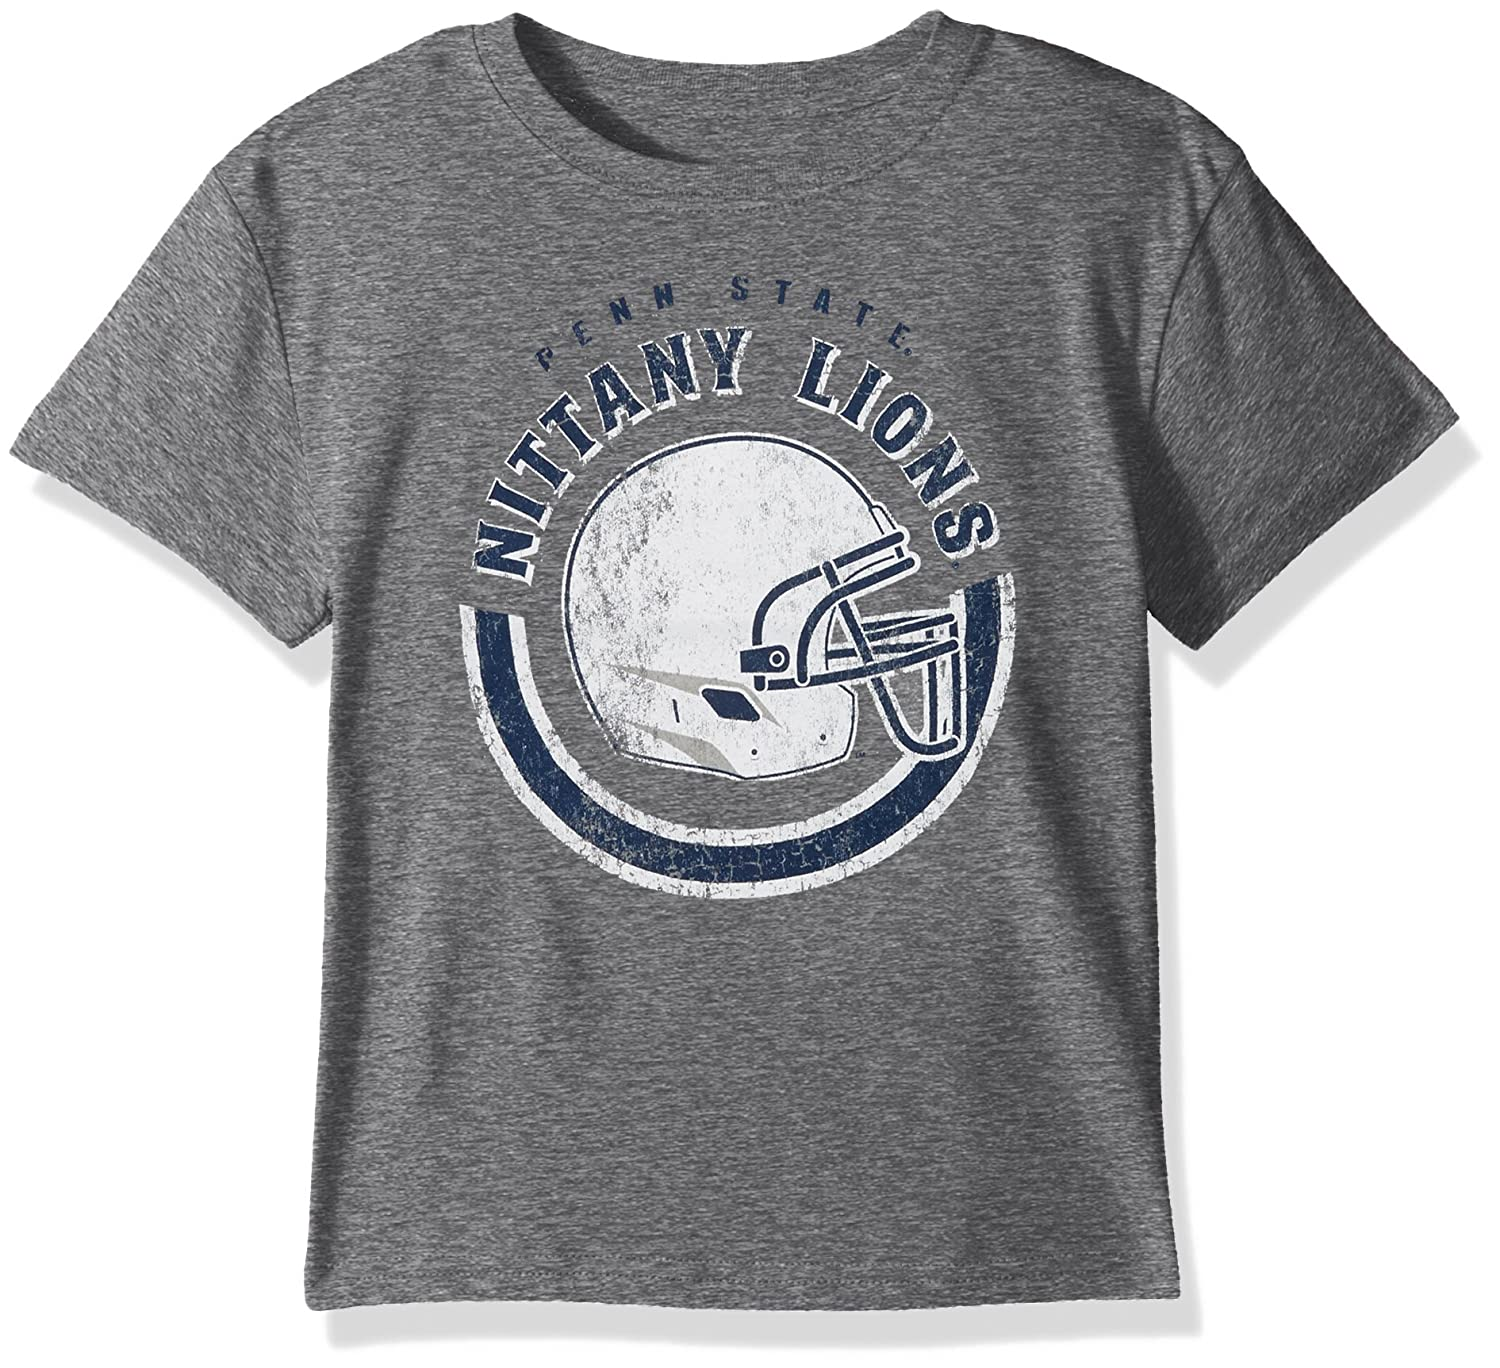 14-16 Youth Large NCAA by Outerstuff NCAA Penn State Nittany Lions Youth Boys Cannon Ball Alternate Color Tri-blend Tee Dark Grey Heather